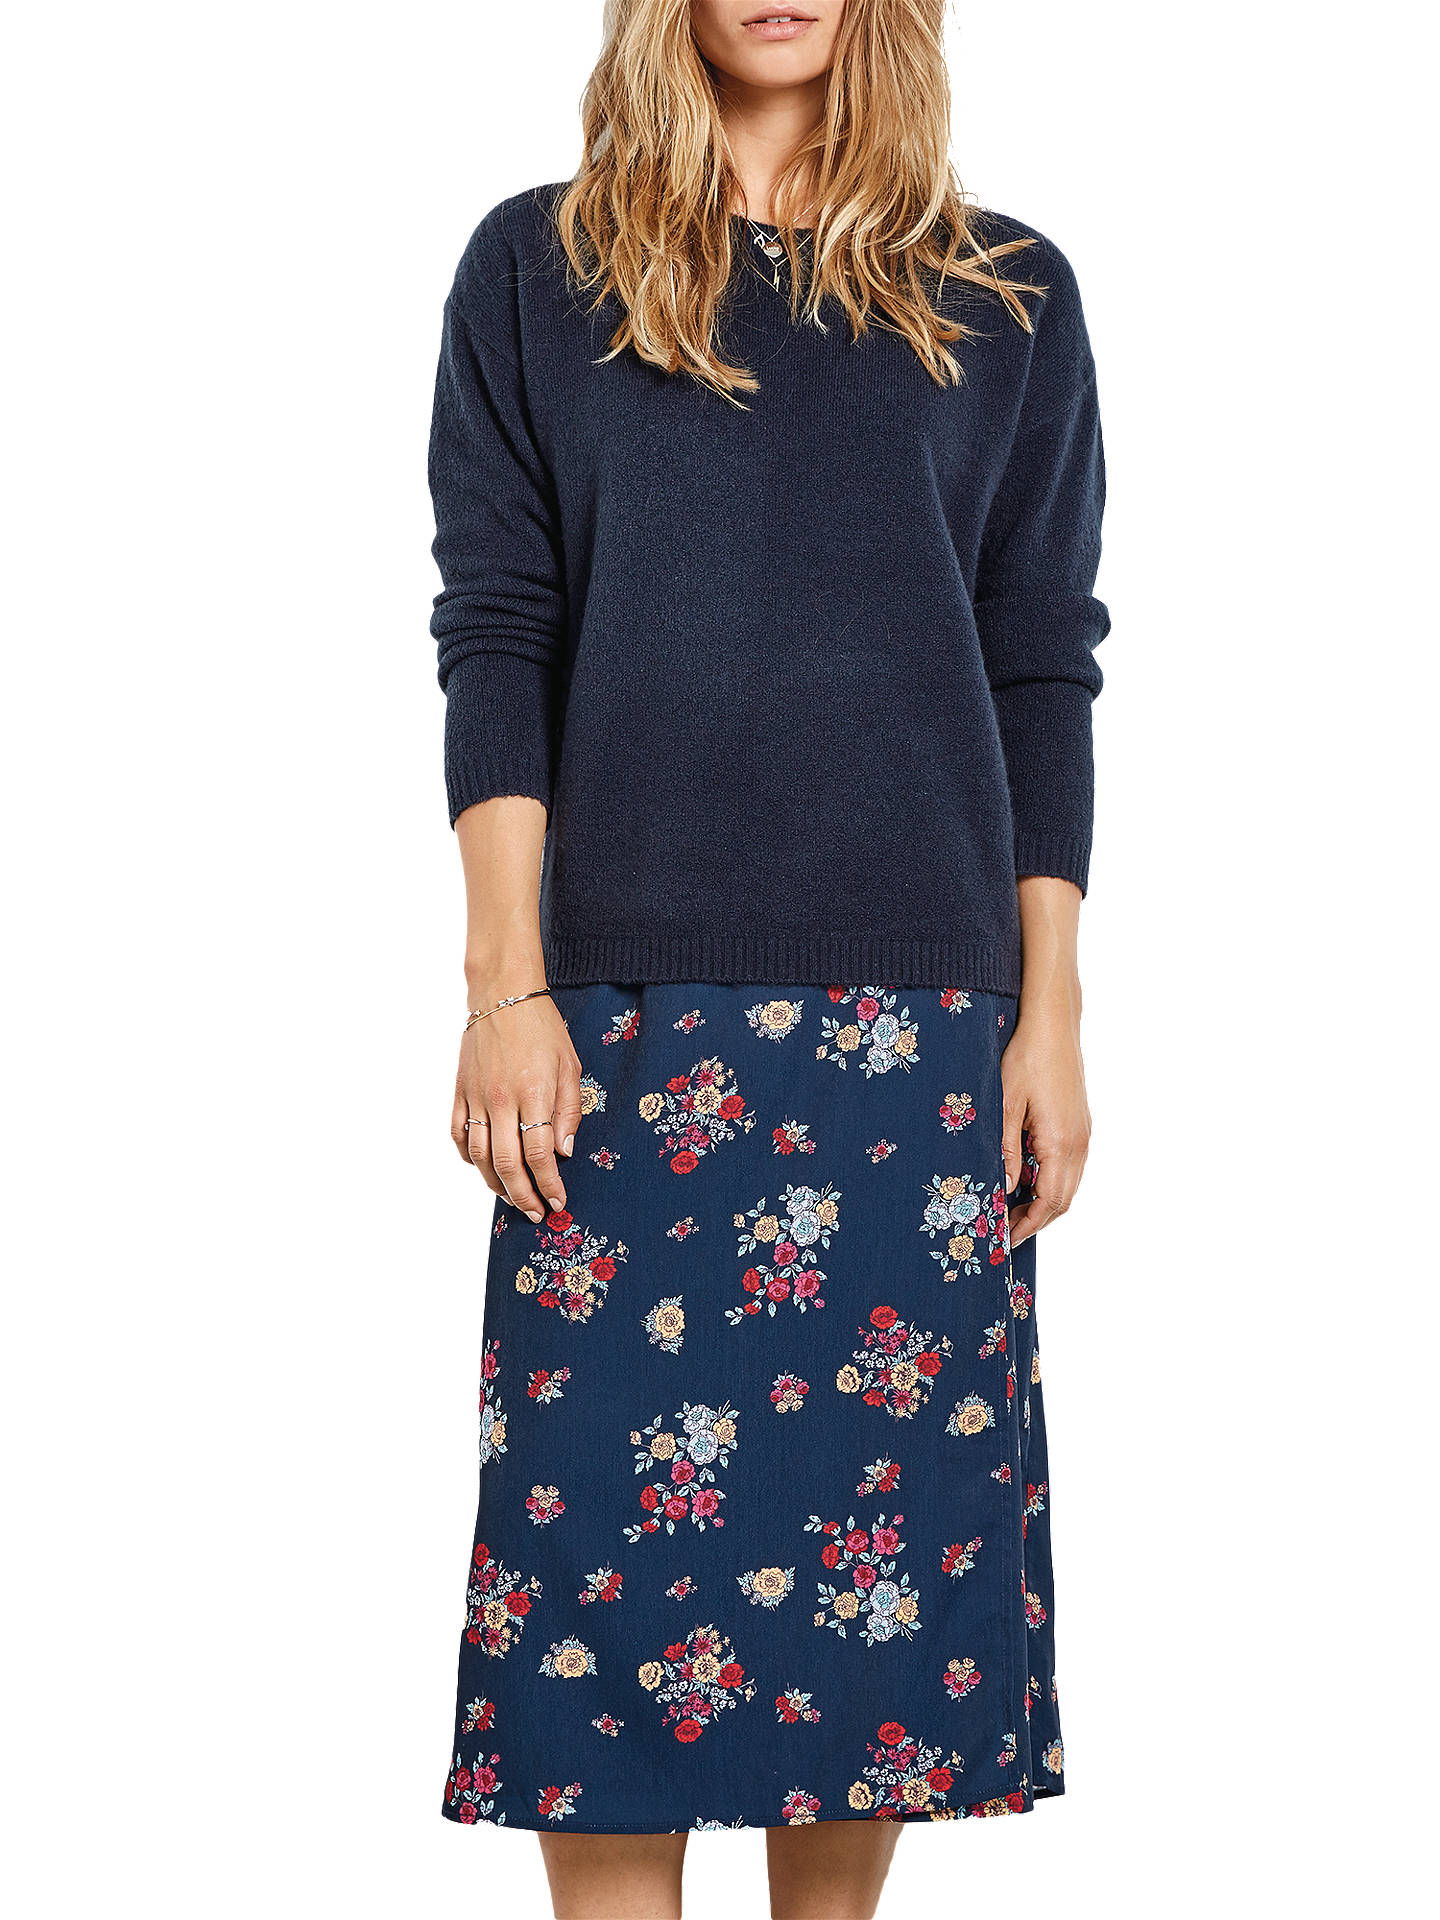 Buyhush Vienna Floral Wrap Skirt, Navy, 6 Online at johnlewis.com